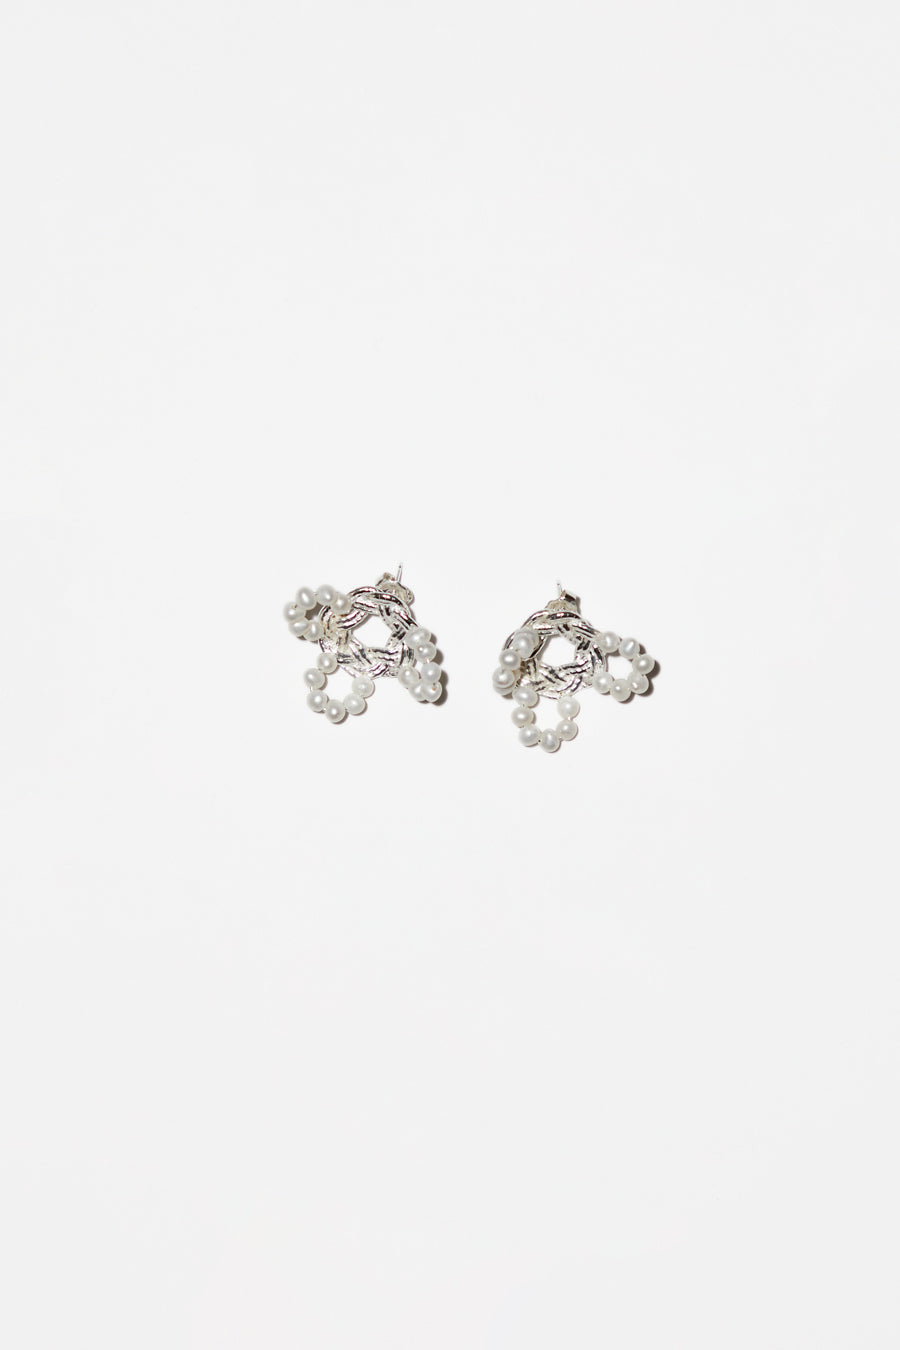 Mirit Weinstock Mizuhiki and Pearls Petals Earrings in Silver